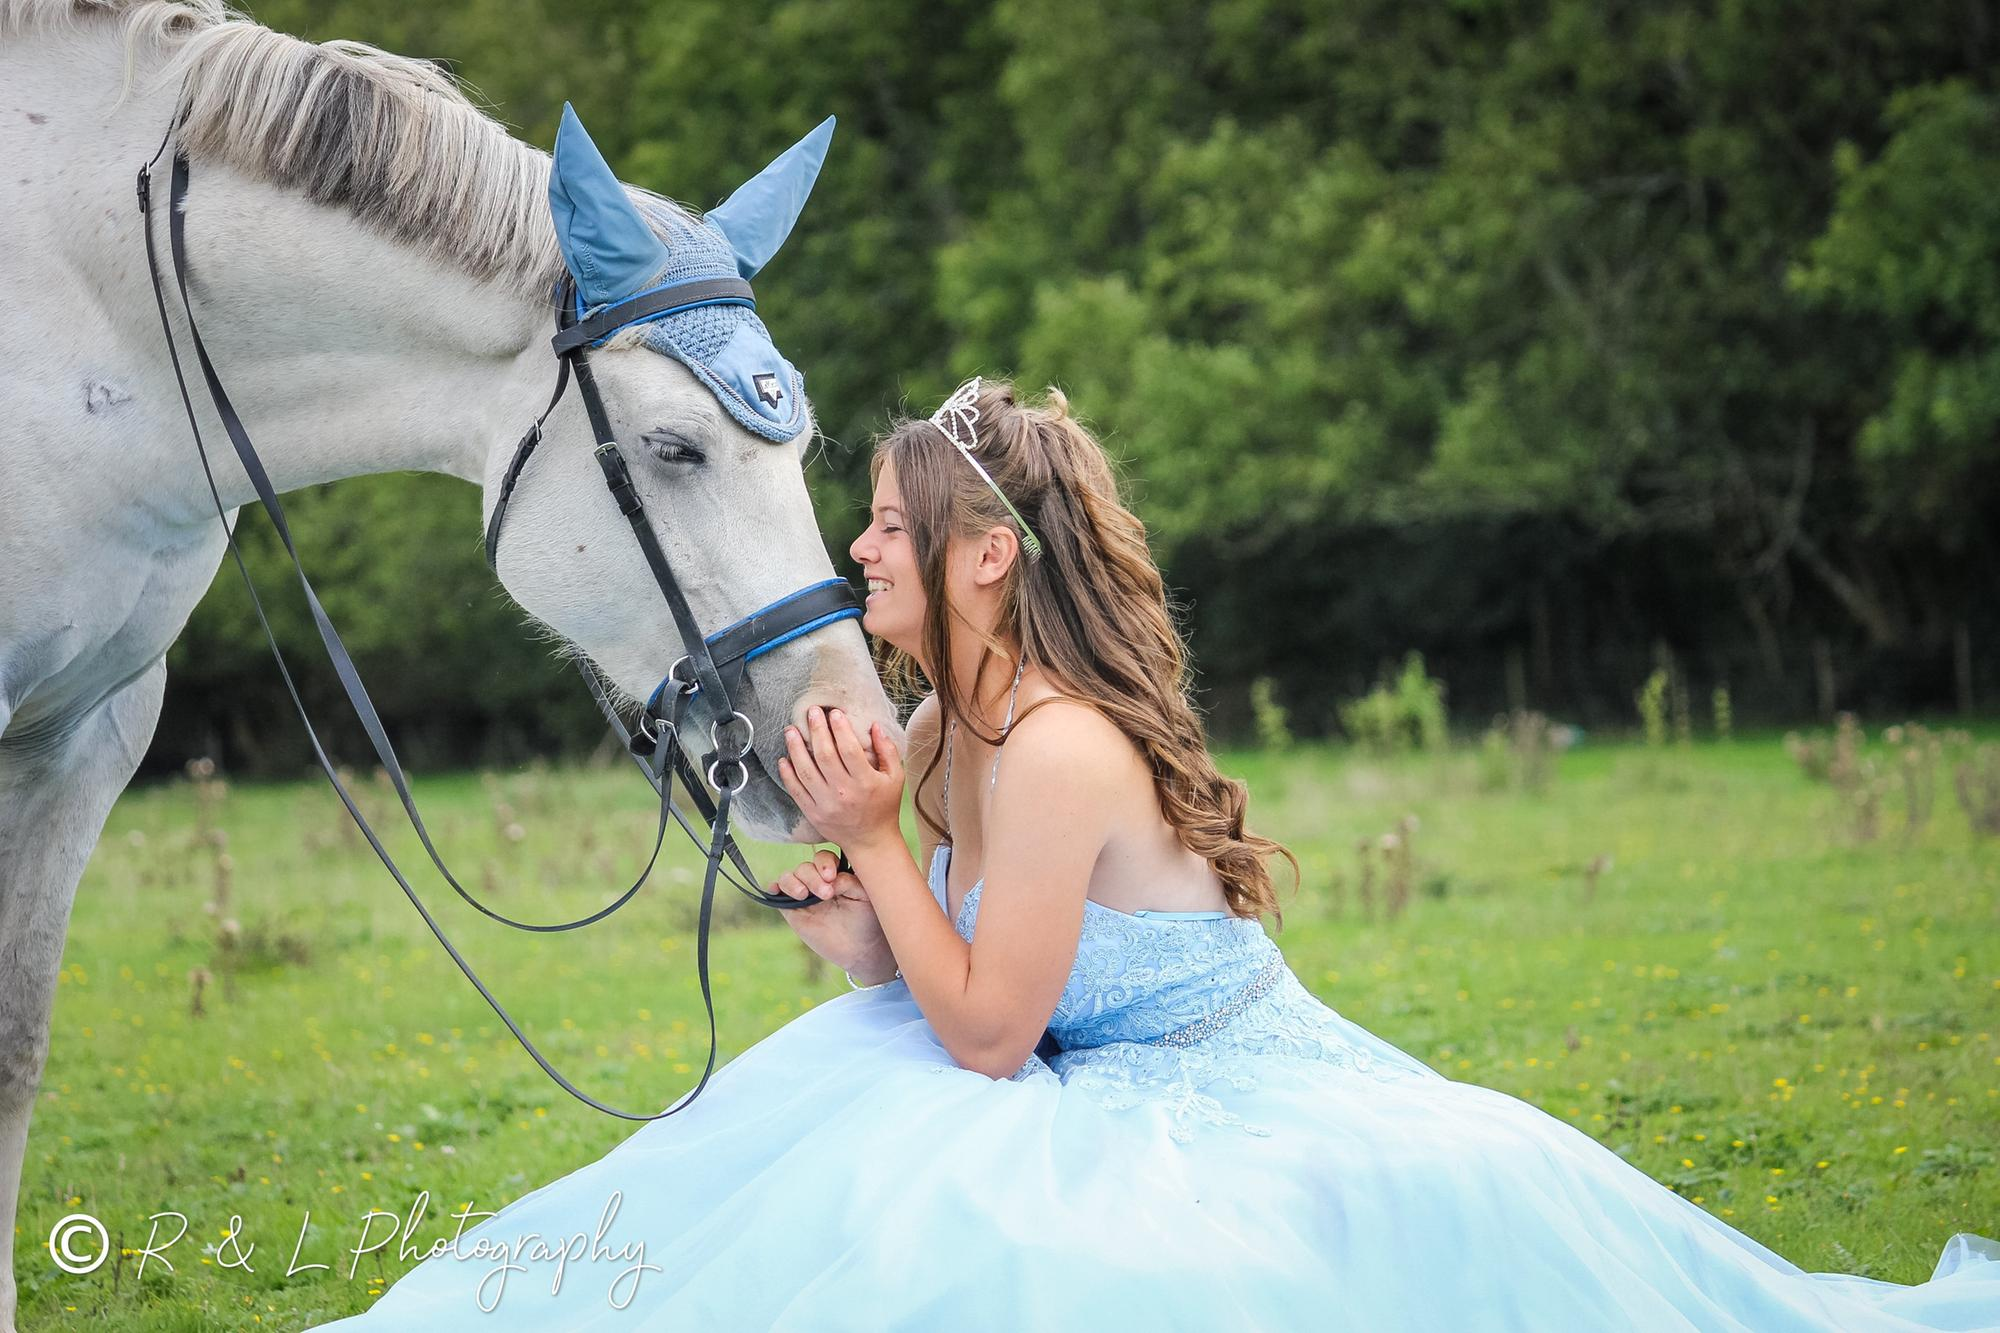 Horserider has dream prom dress photoshoot with beloved pony after school prom is cancelled